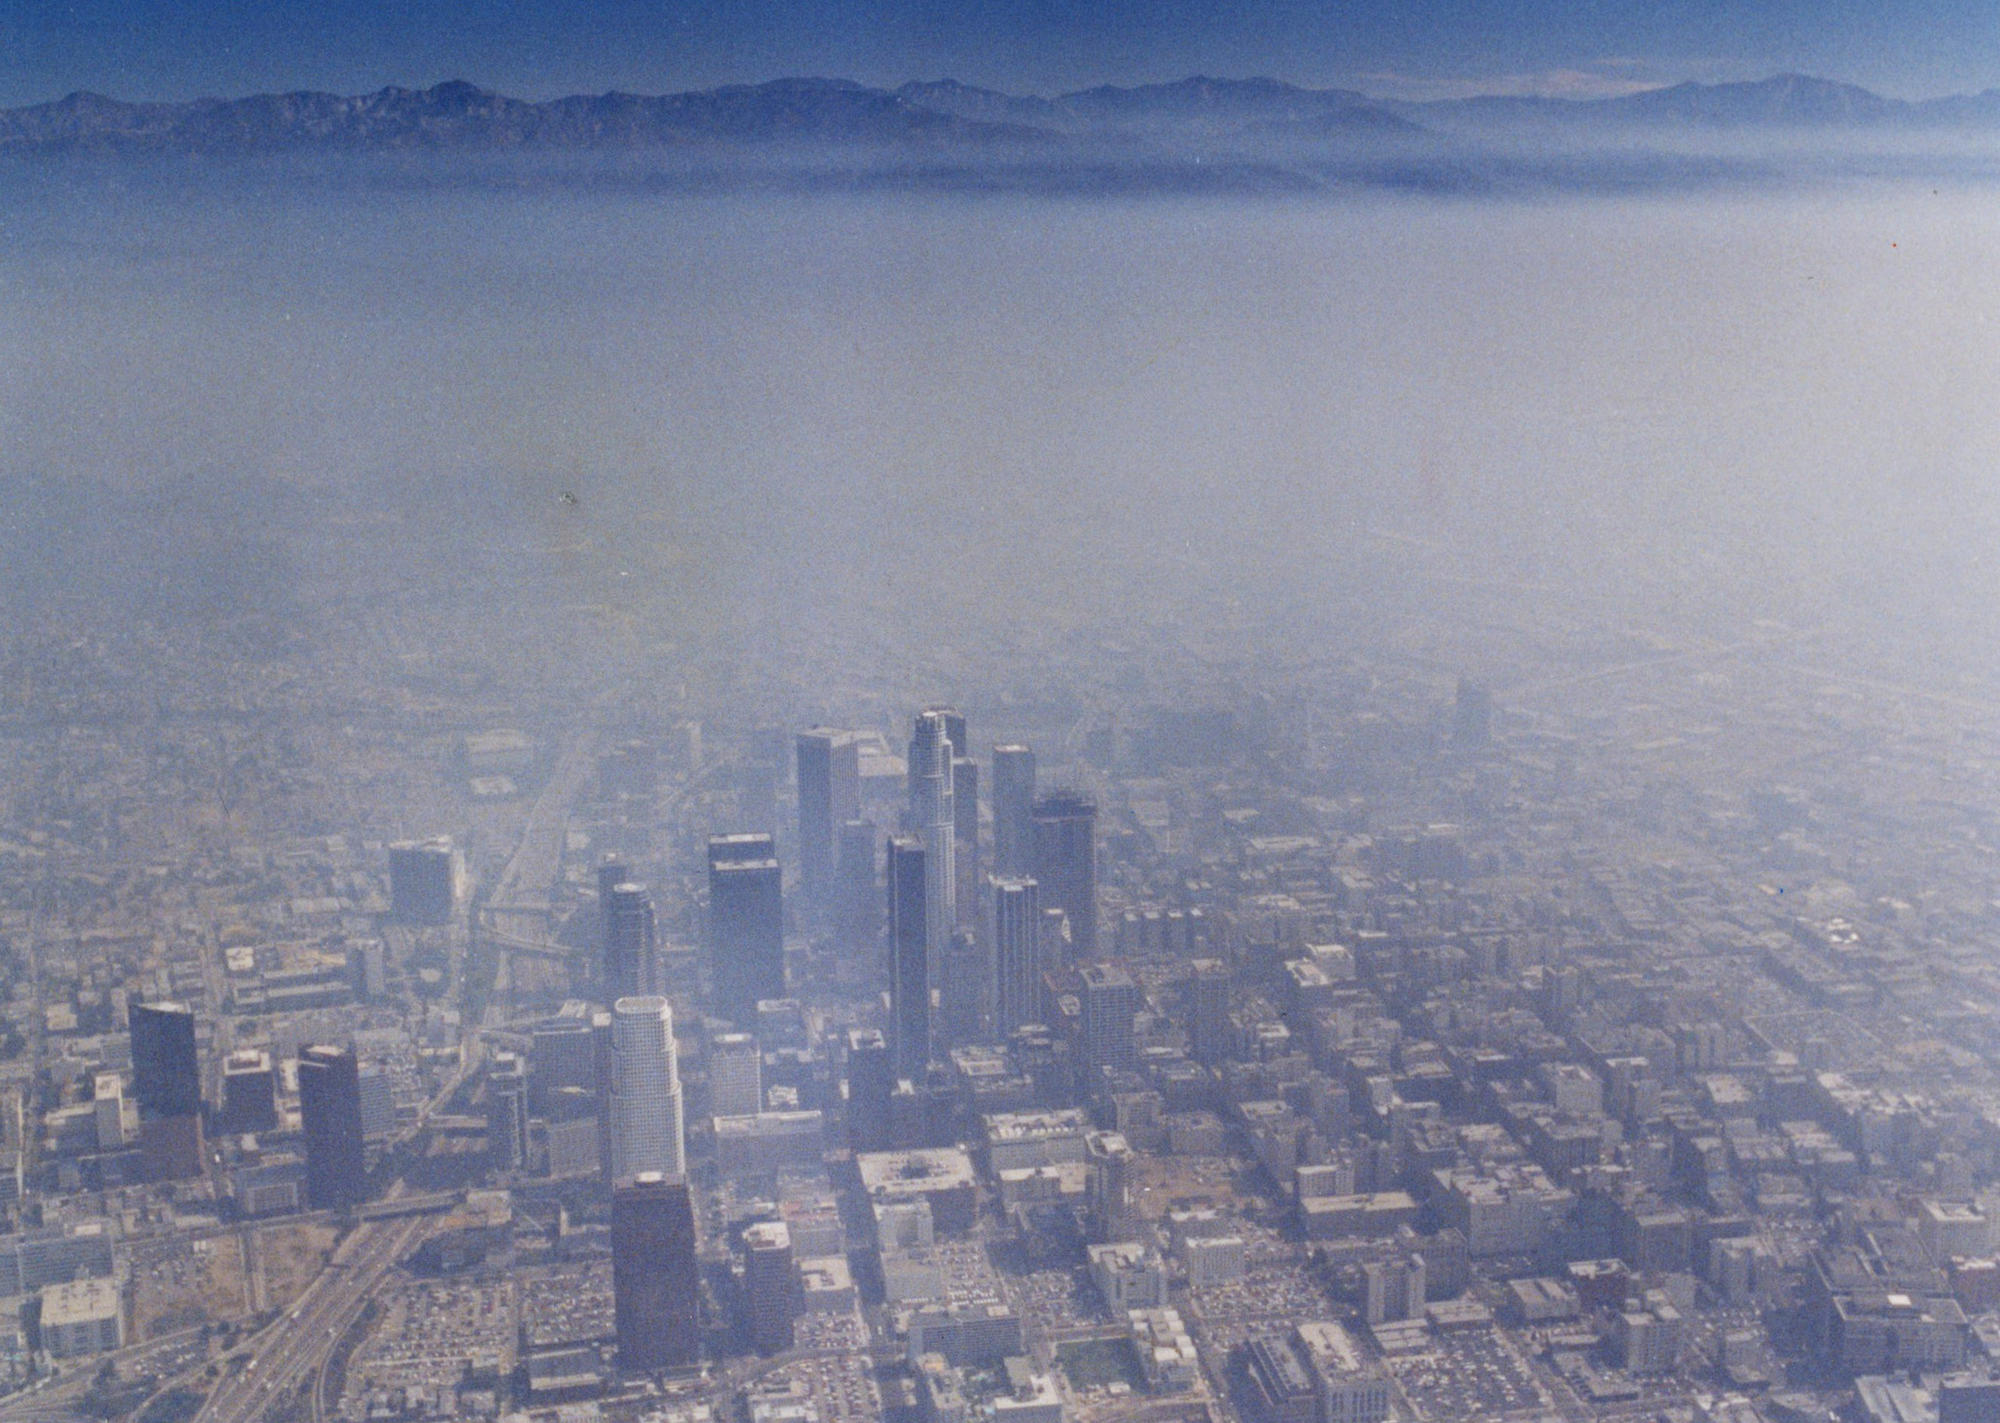 Aug. 30, 1990: An aerial view of the downtown Los Angeles skyline.